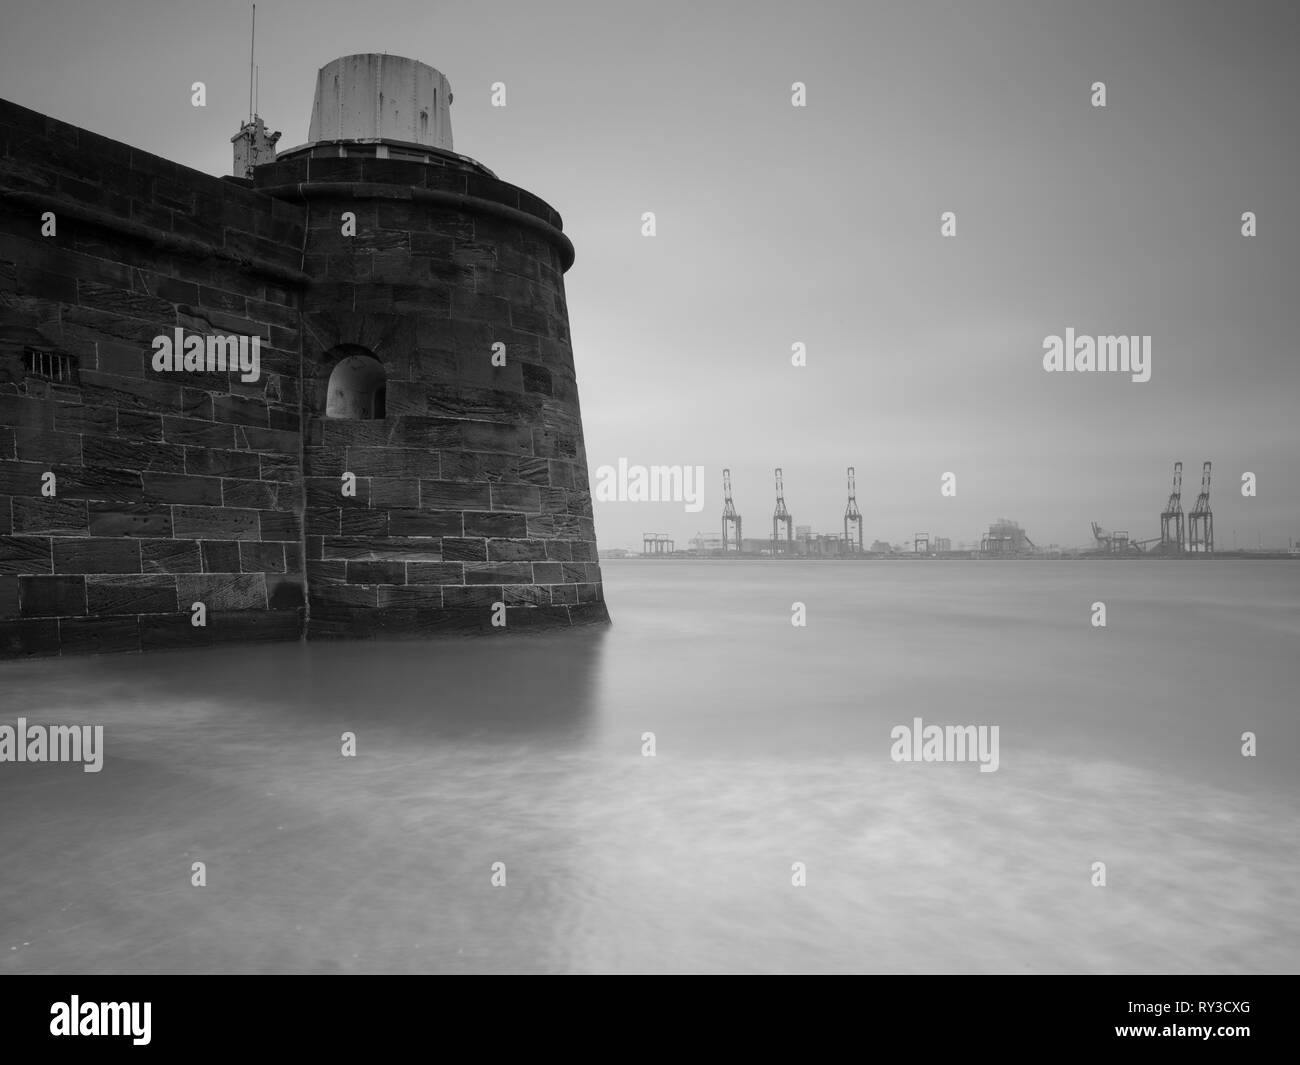 Fort Perch Rock in New Brighton was built in 1825. This shot is looking over to Liverpool dockyards. - Stock Image